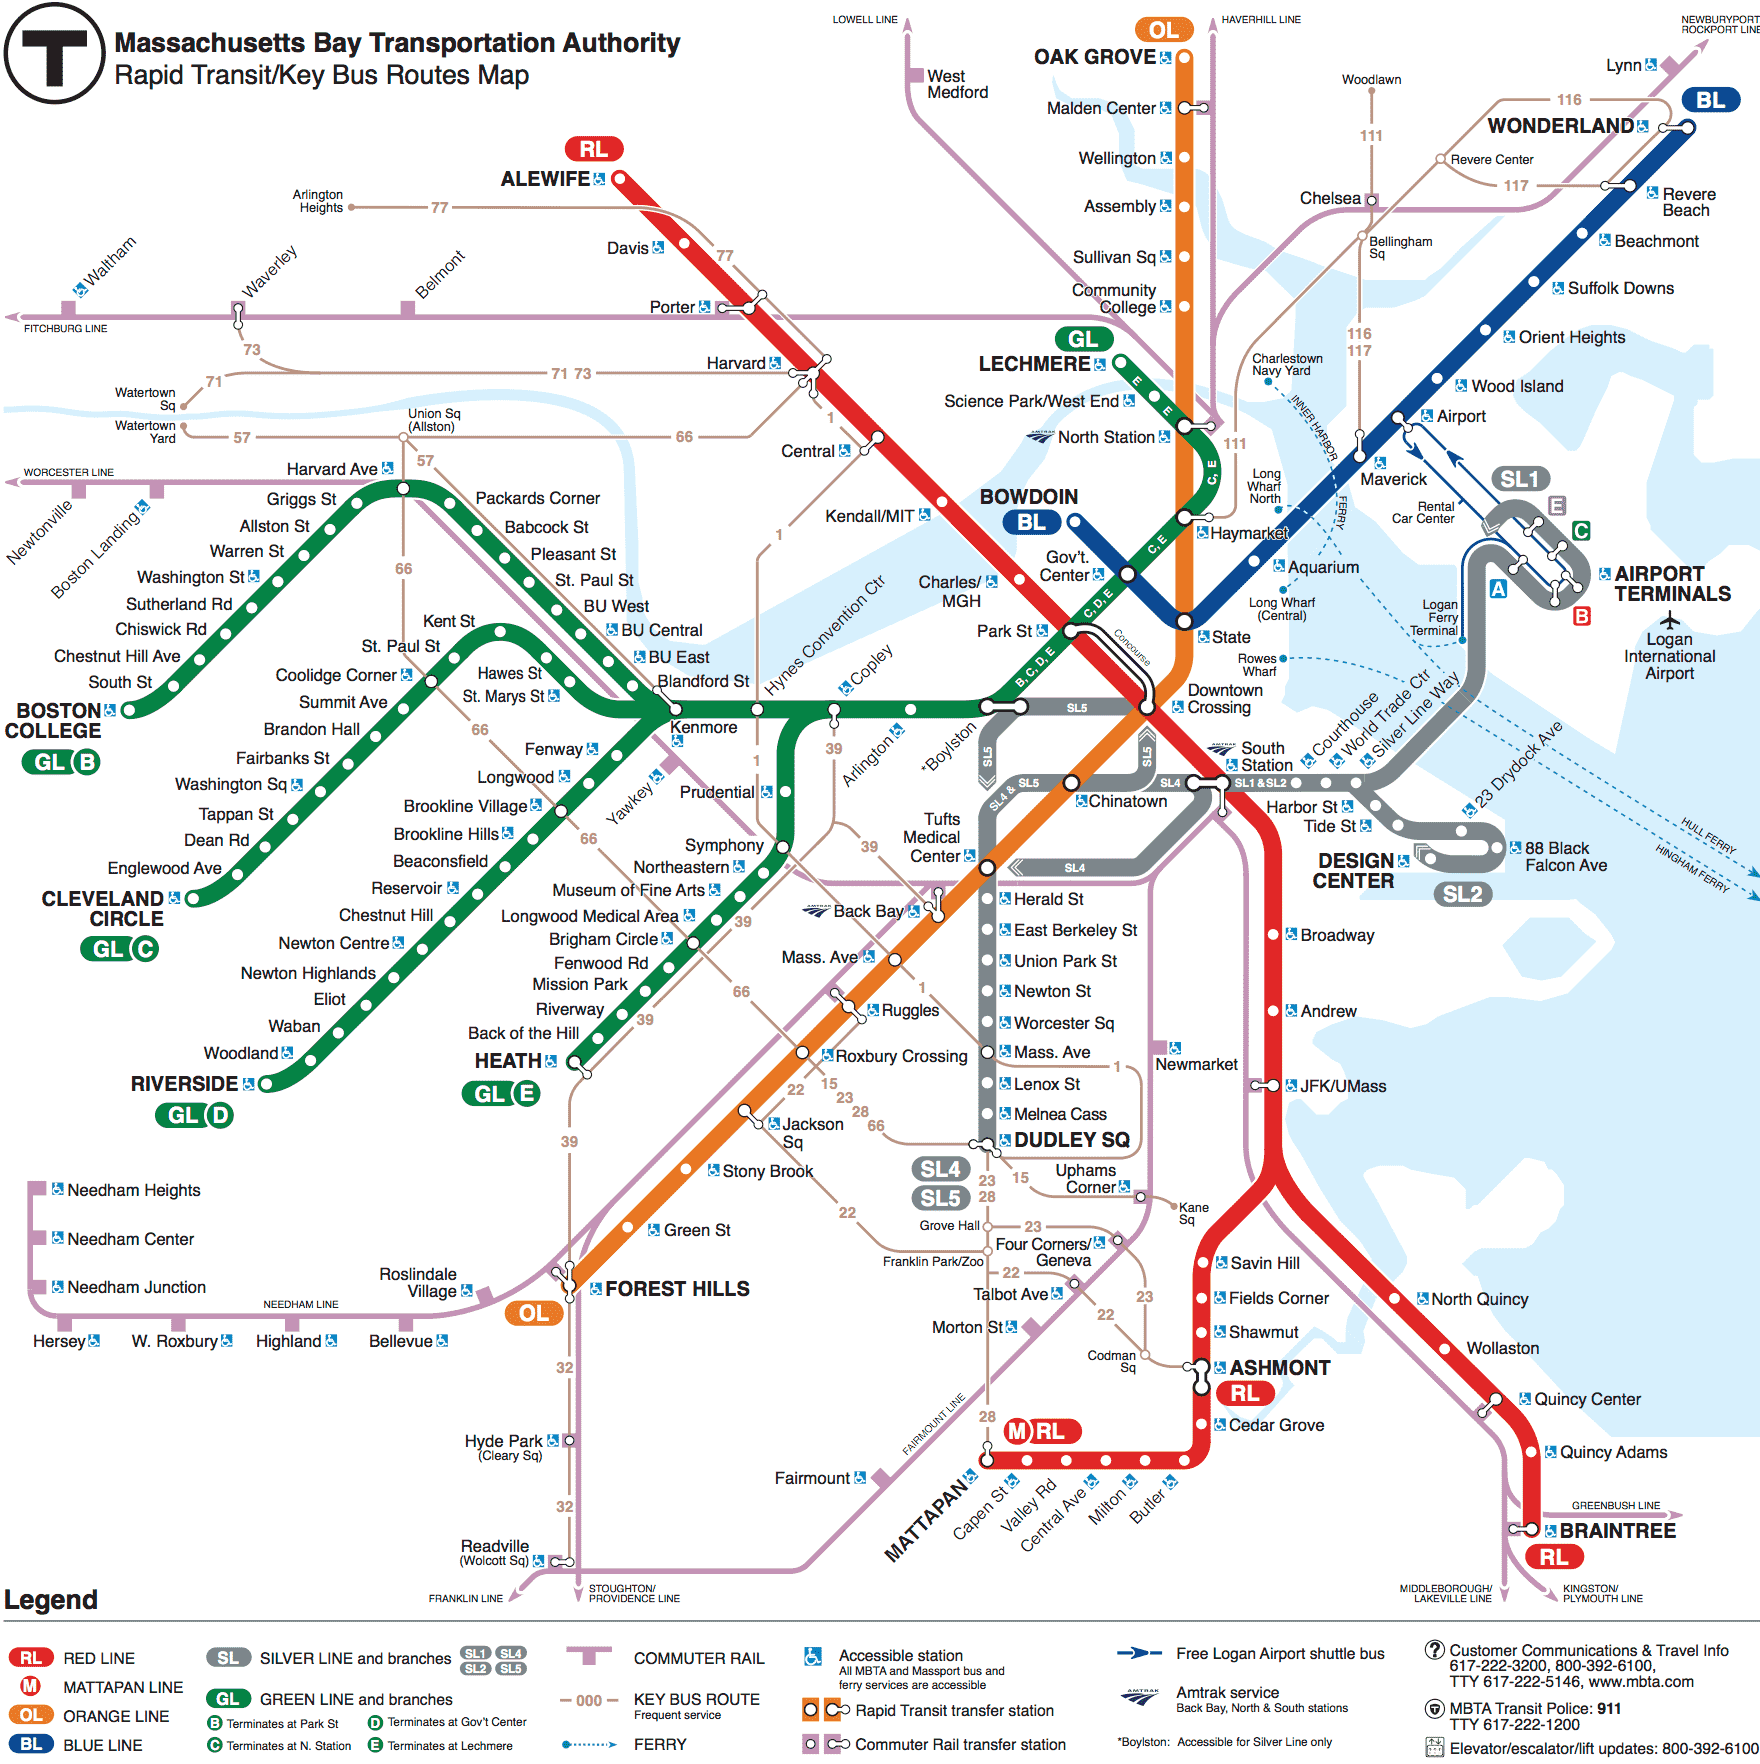 Subway Schedules Maps MBTA Massachusetts Bay - Maps massachusetts